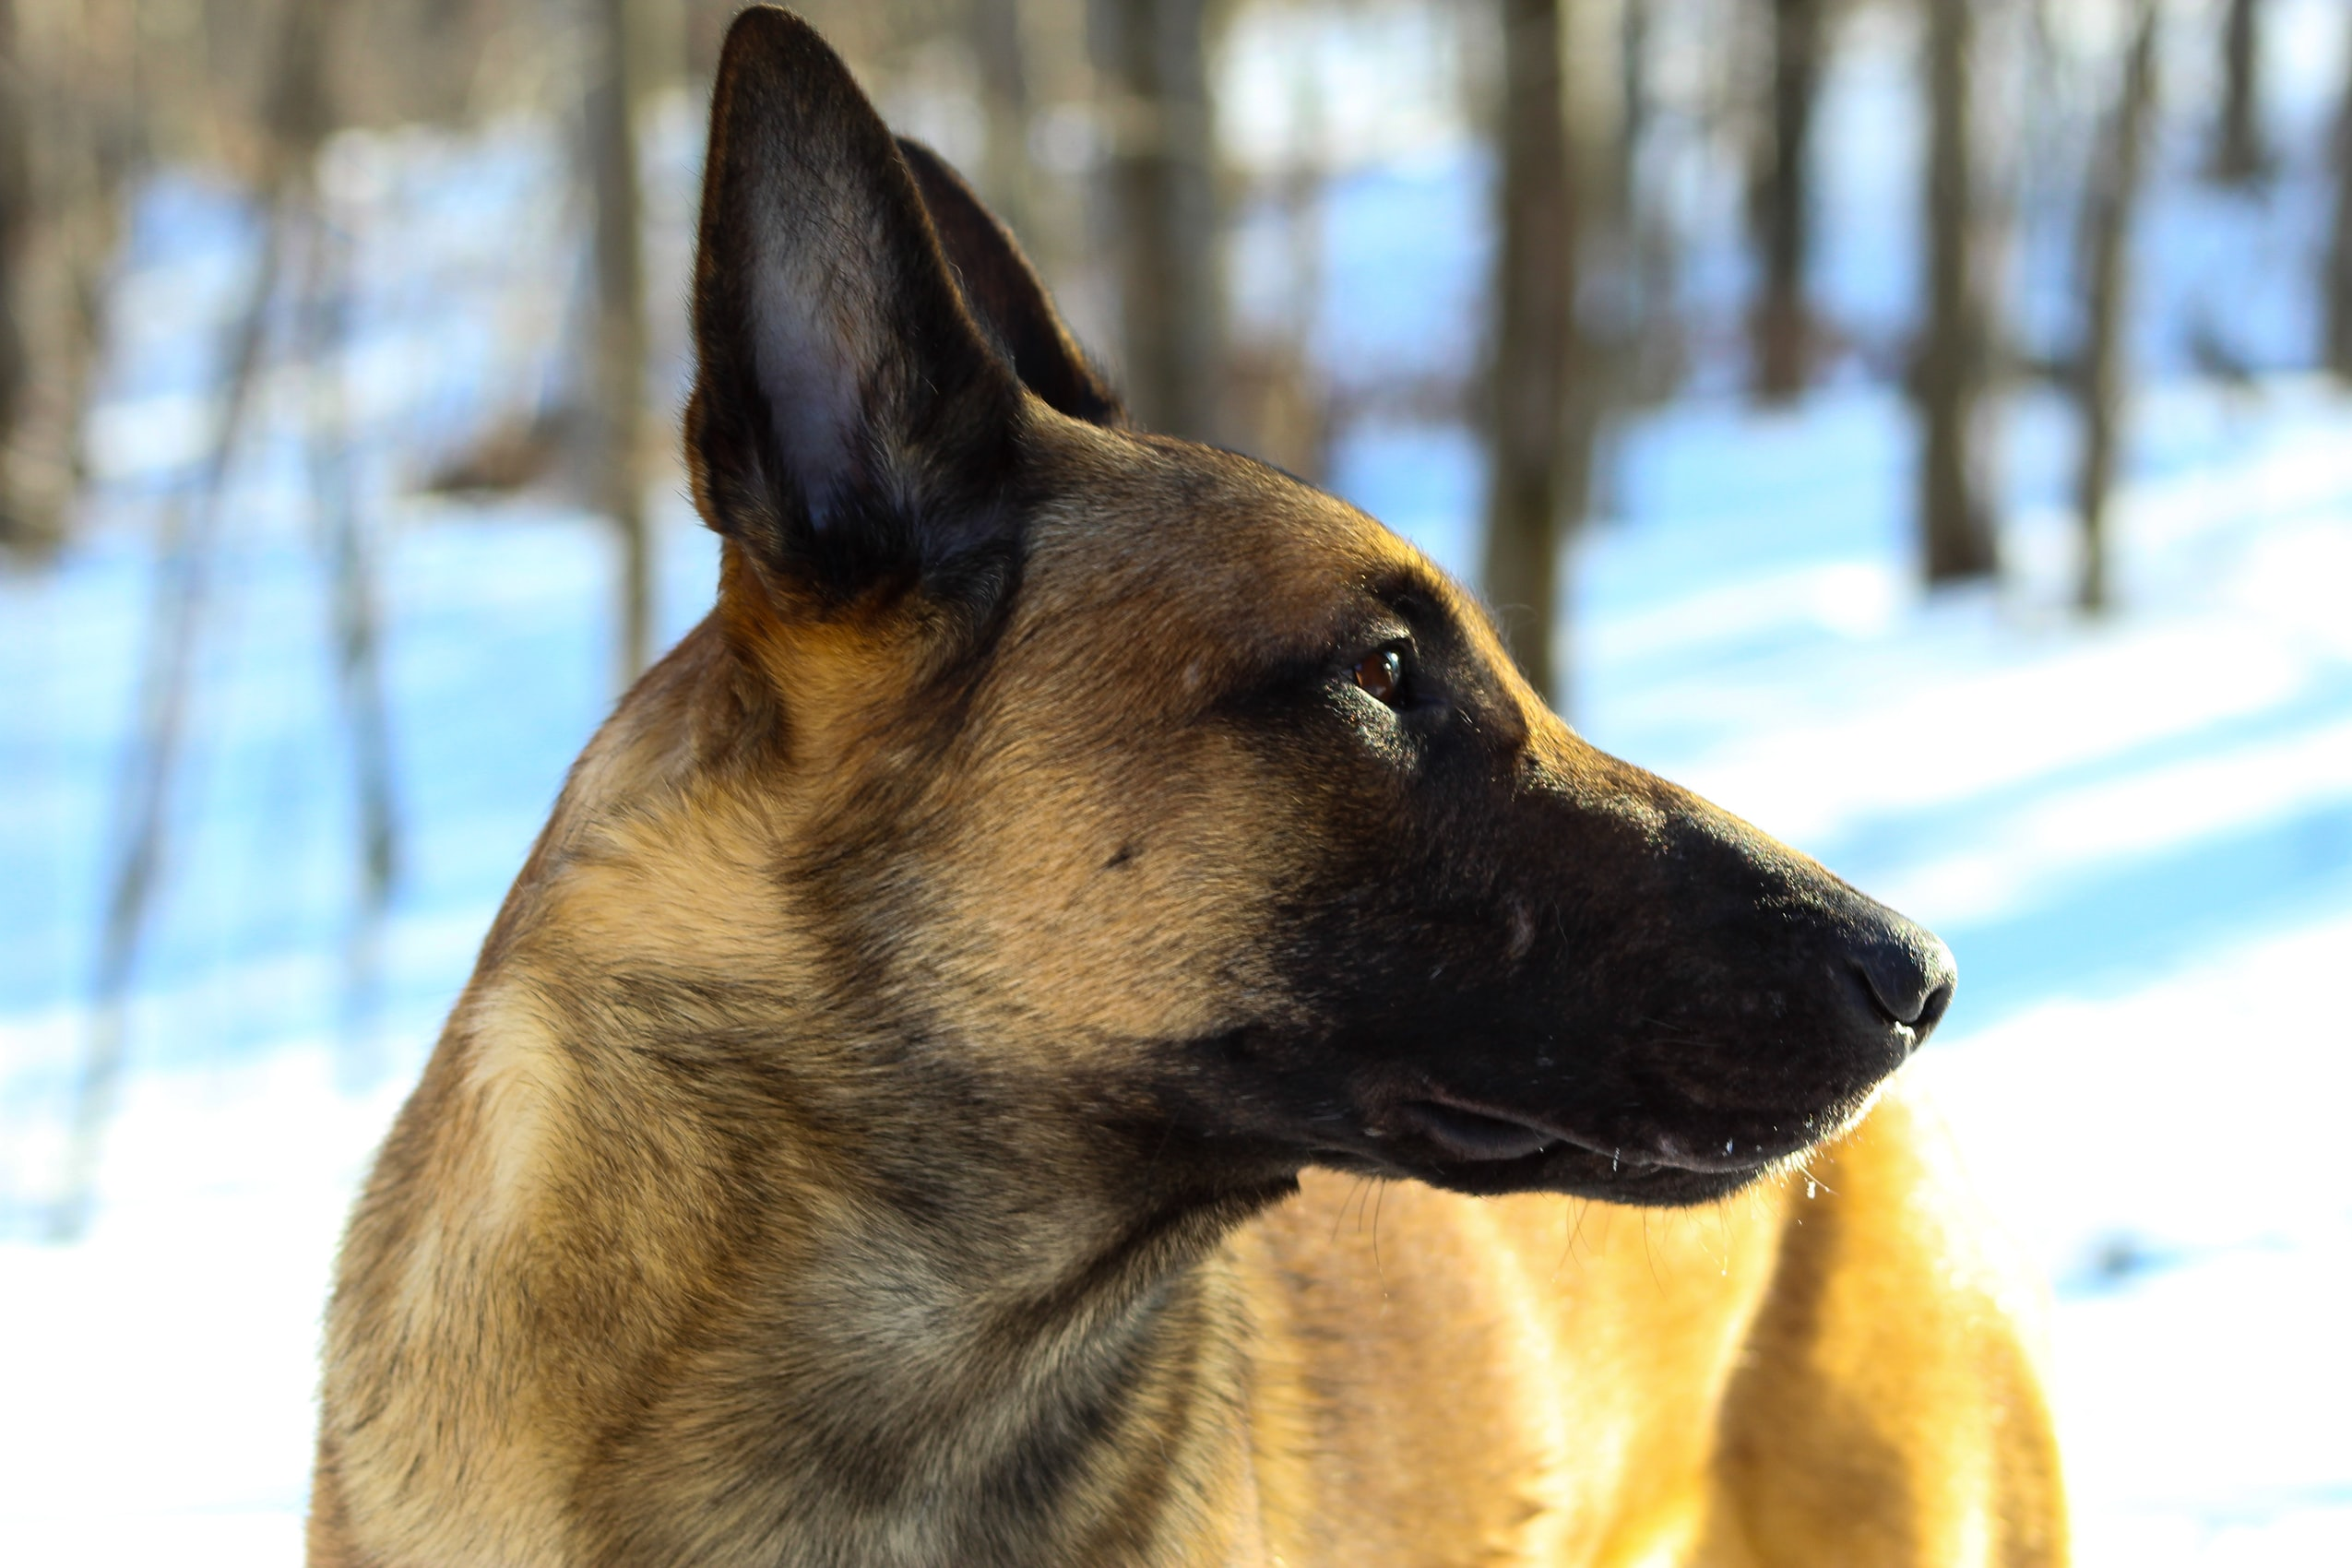 Belgian malinois photo